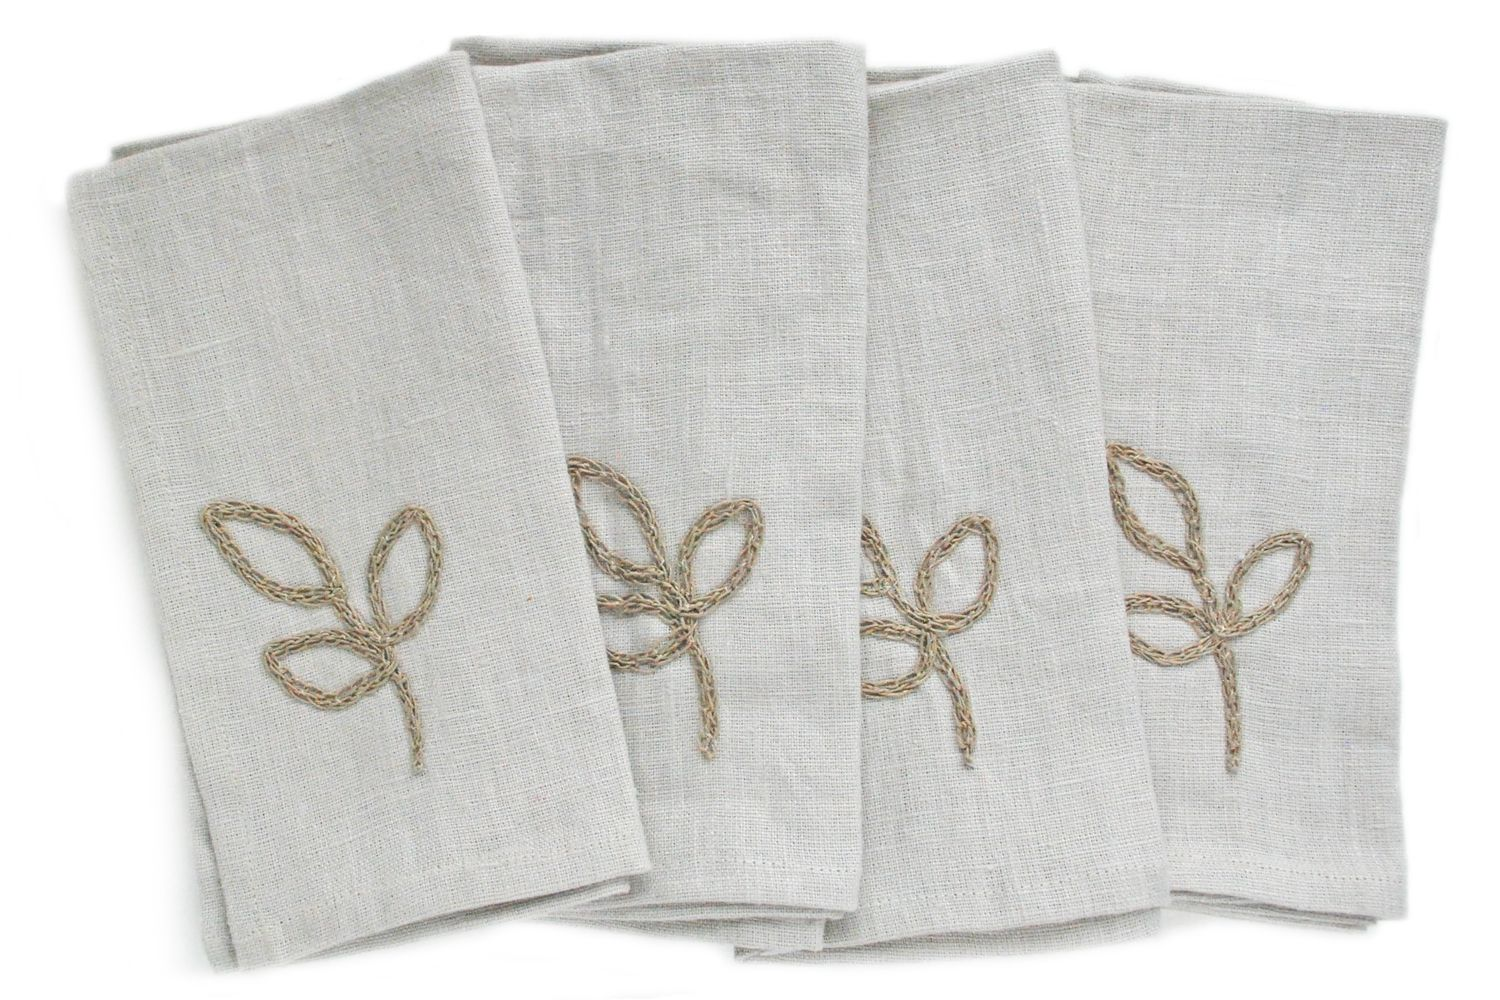 Linen napkins with hand crocheted leaves